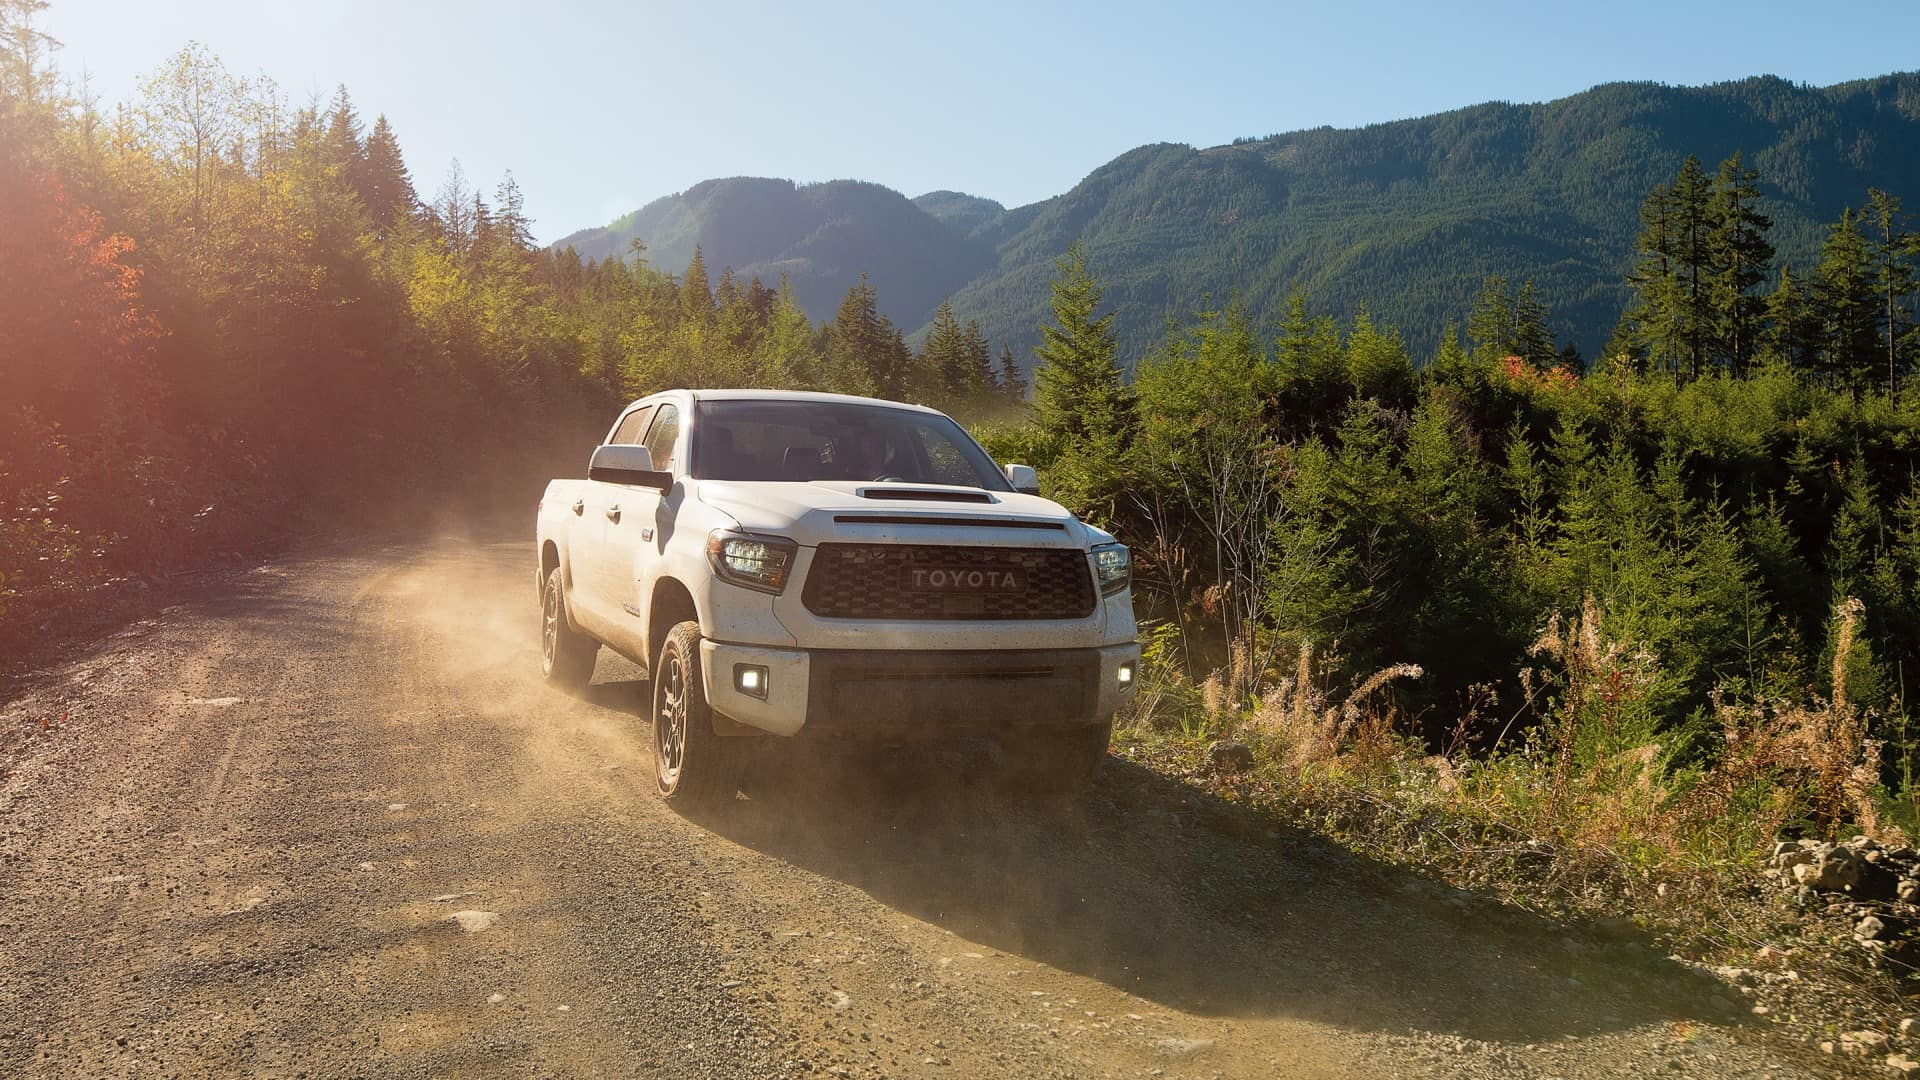 Toyota_Tundra_Driving_On_Dirt_Road